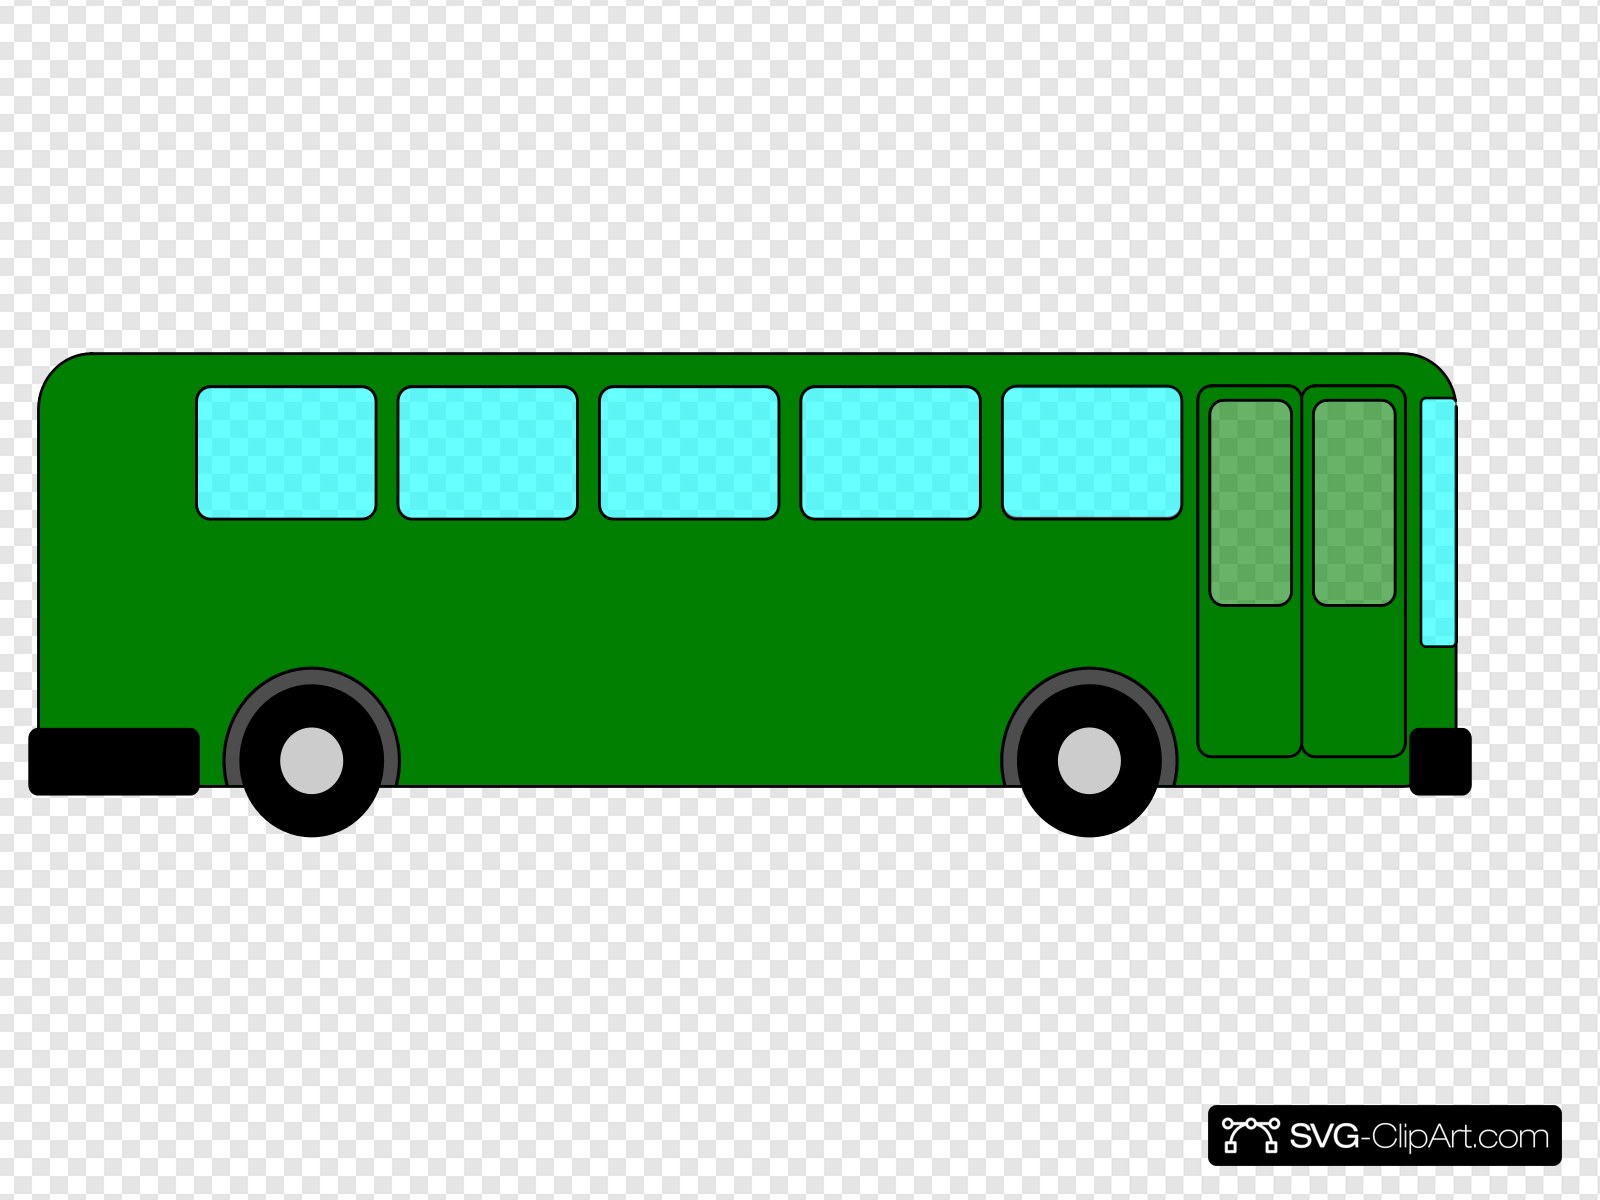 Green Bus Clip art, Icon and SVG.